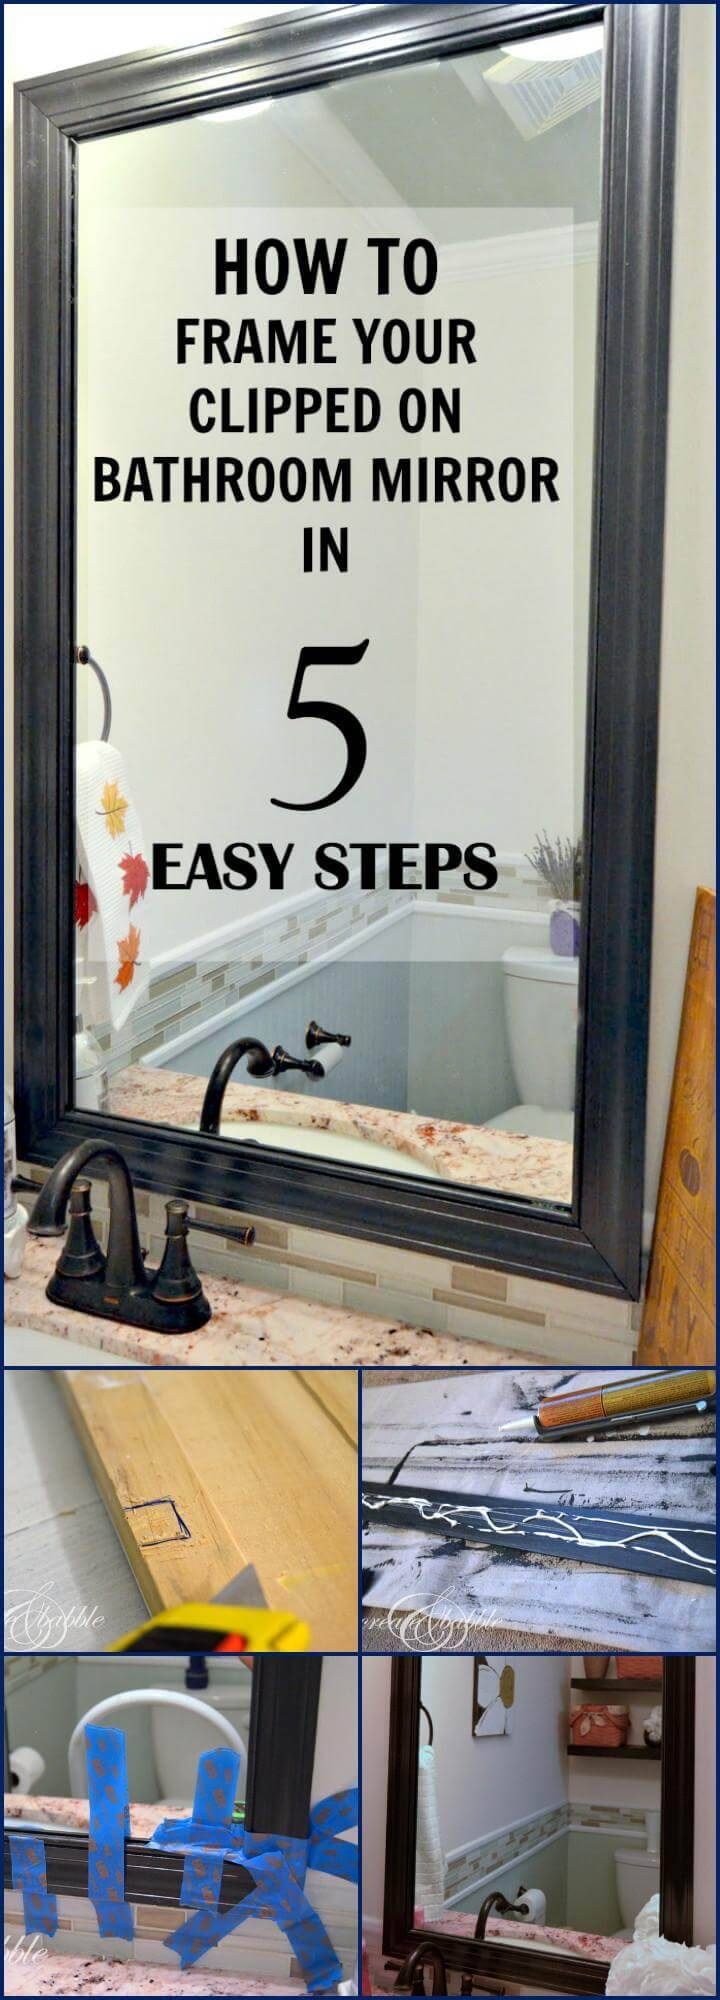 DIY bathroom mirror framing